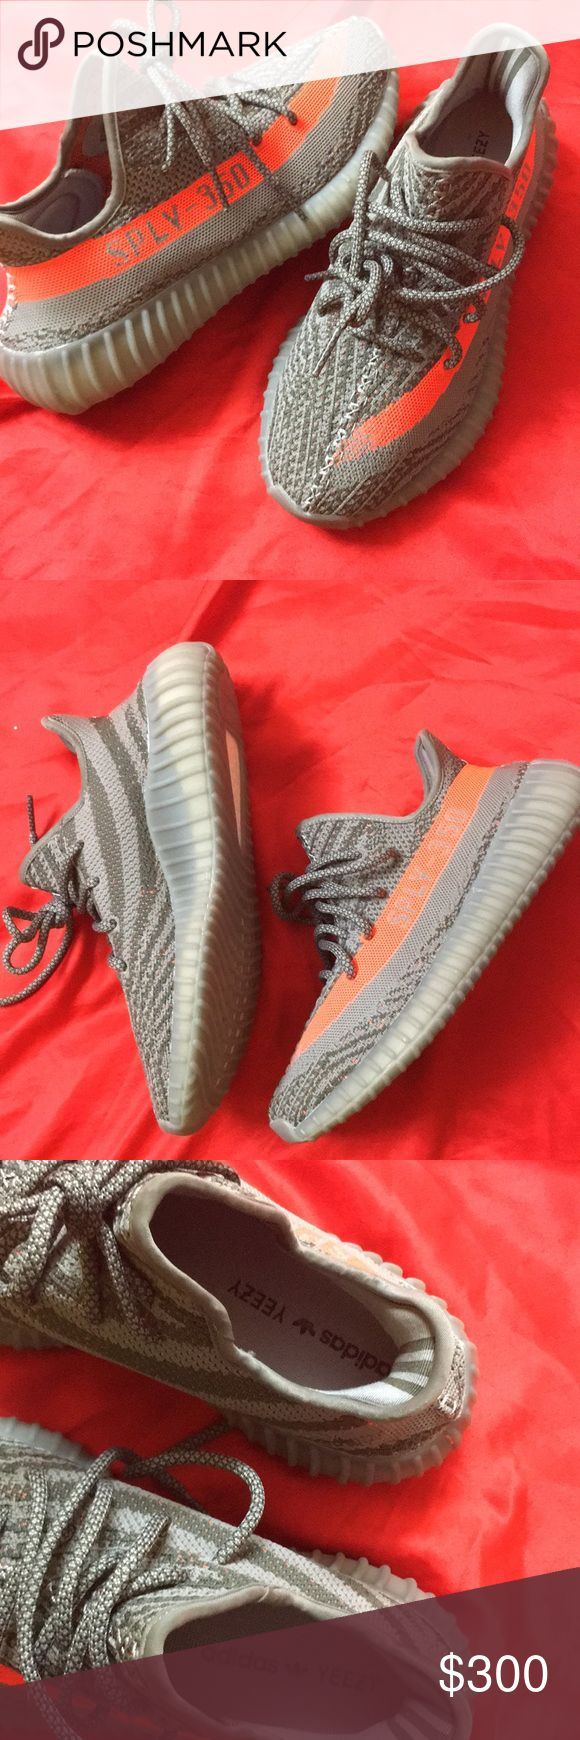 yeezy 350 v2 beluga 1.0 size 8.5  8.5/10 condition  no box will ship via usps 2day flat rate Shoes Sneakers